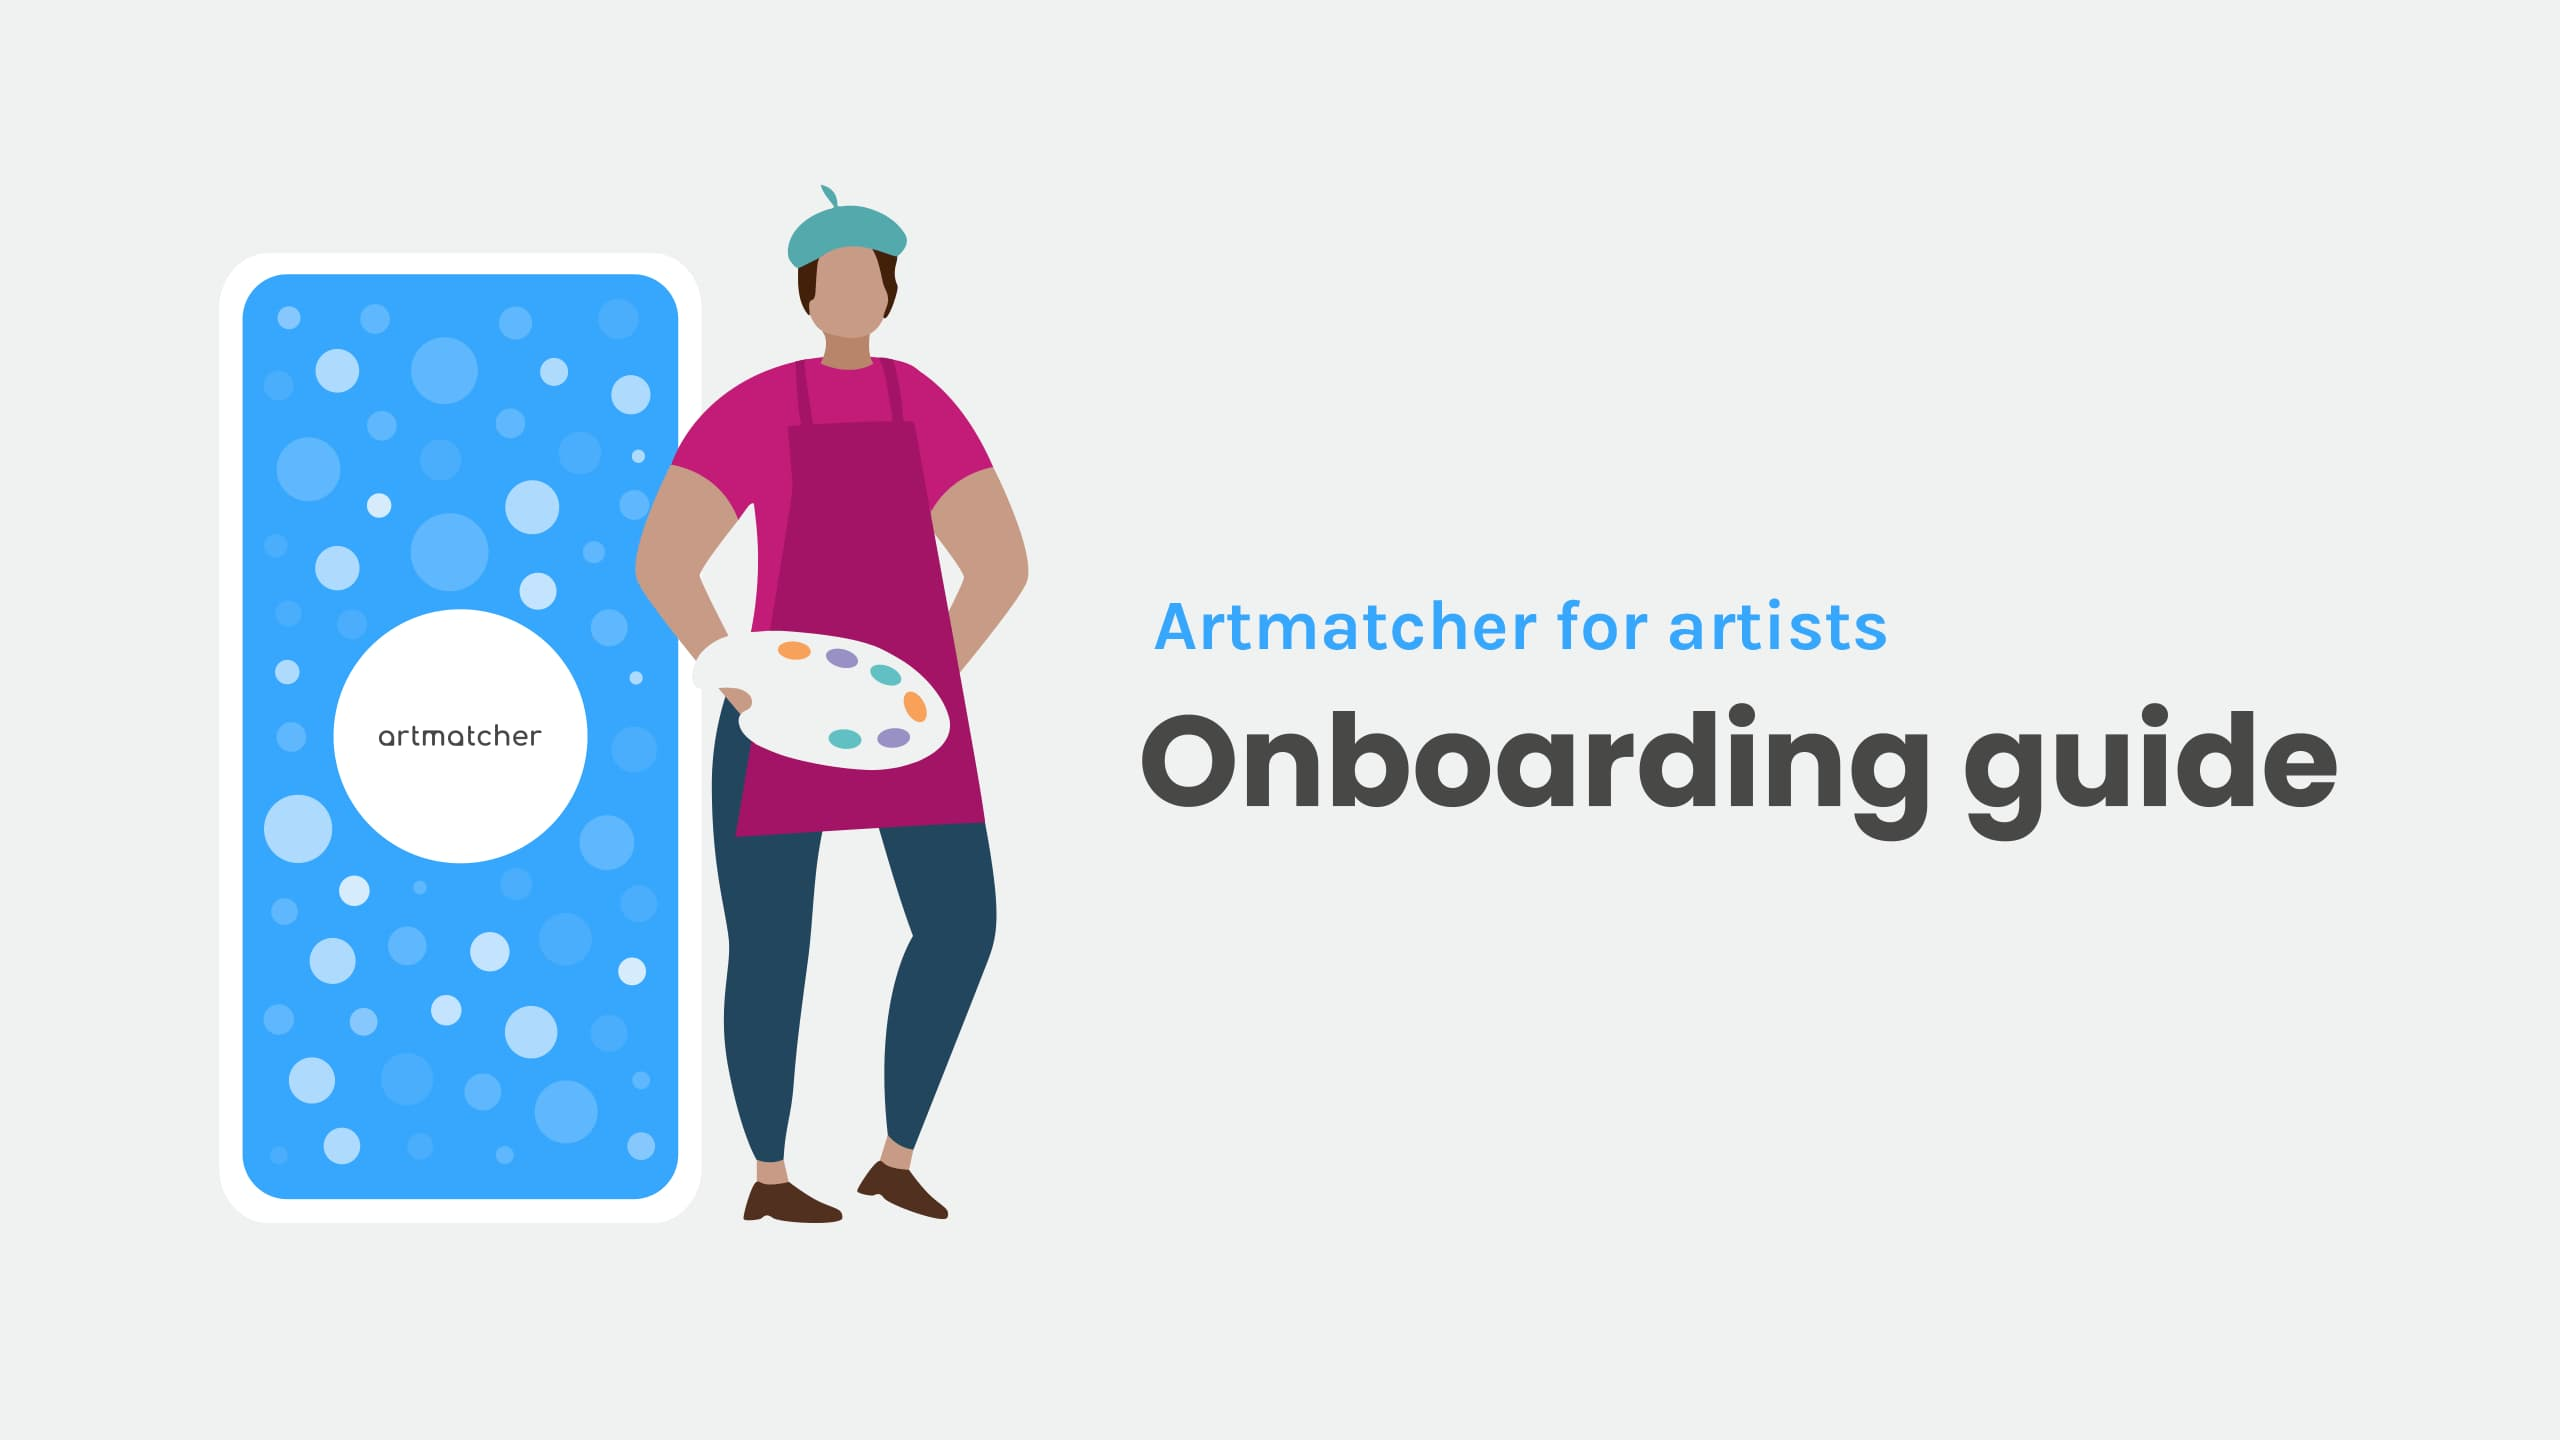 How to Onboard as an Artist